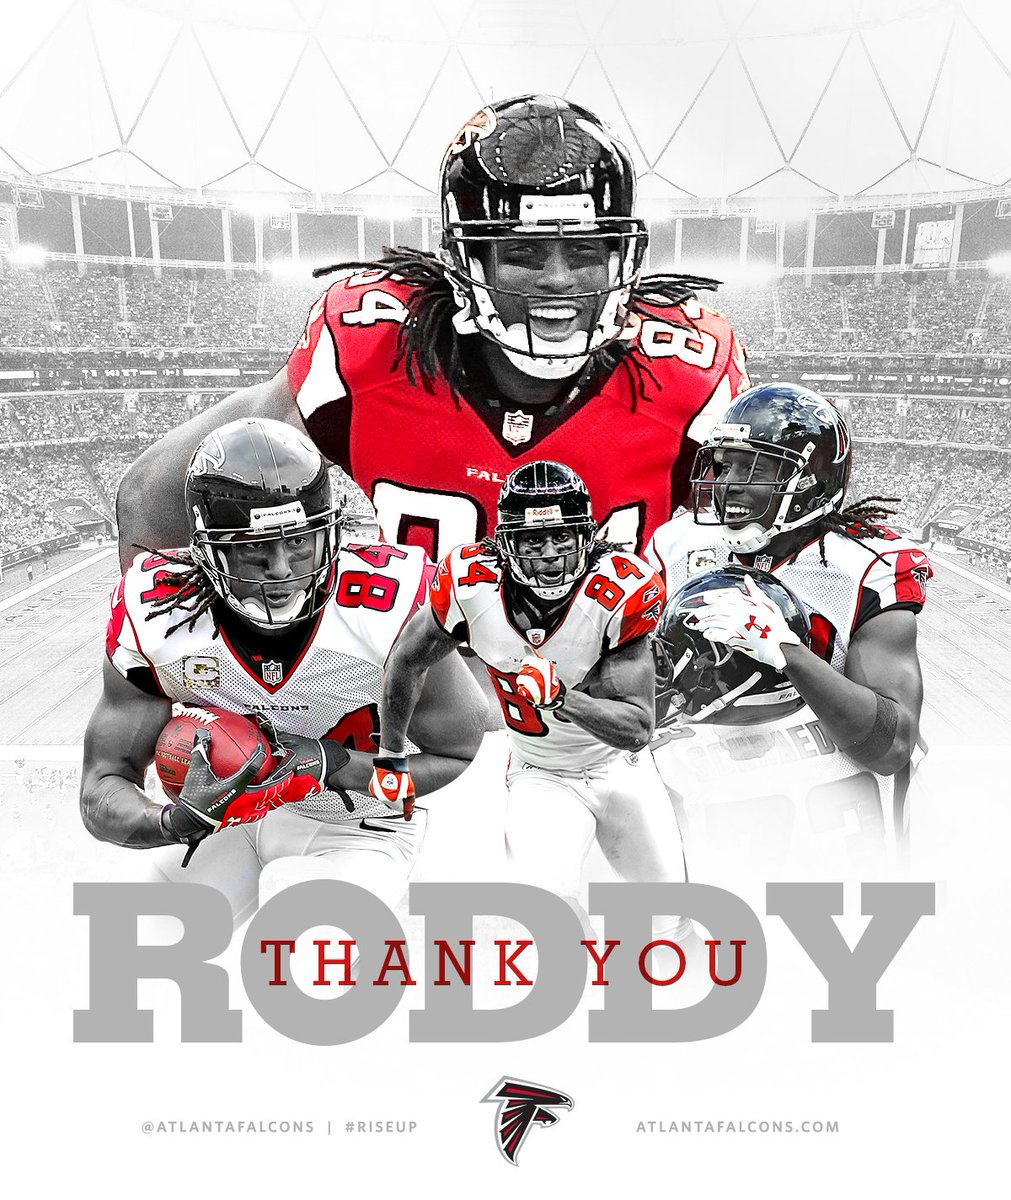 Thank you for everything, 84. #ThankYouRoddy https://t.co/T0Vgfzz8nH